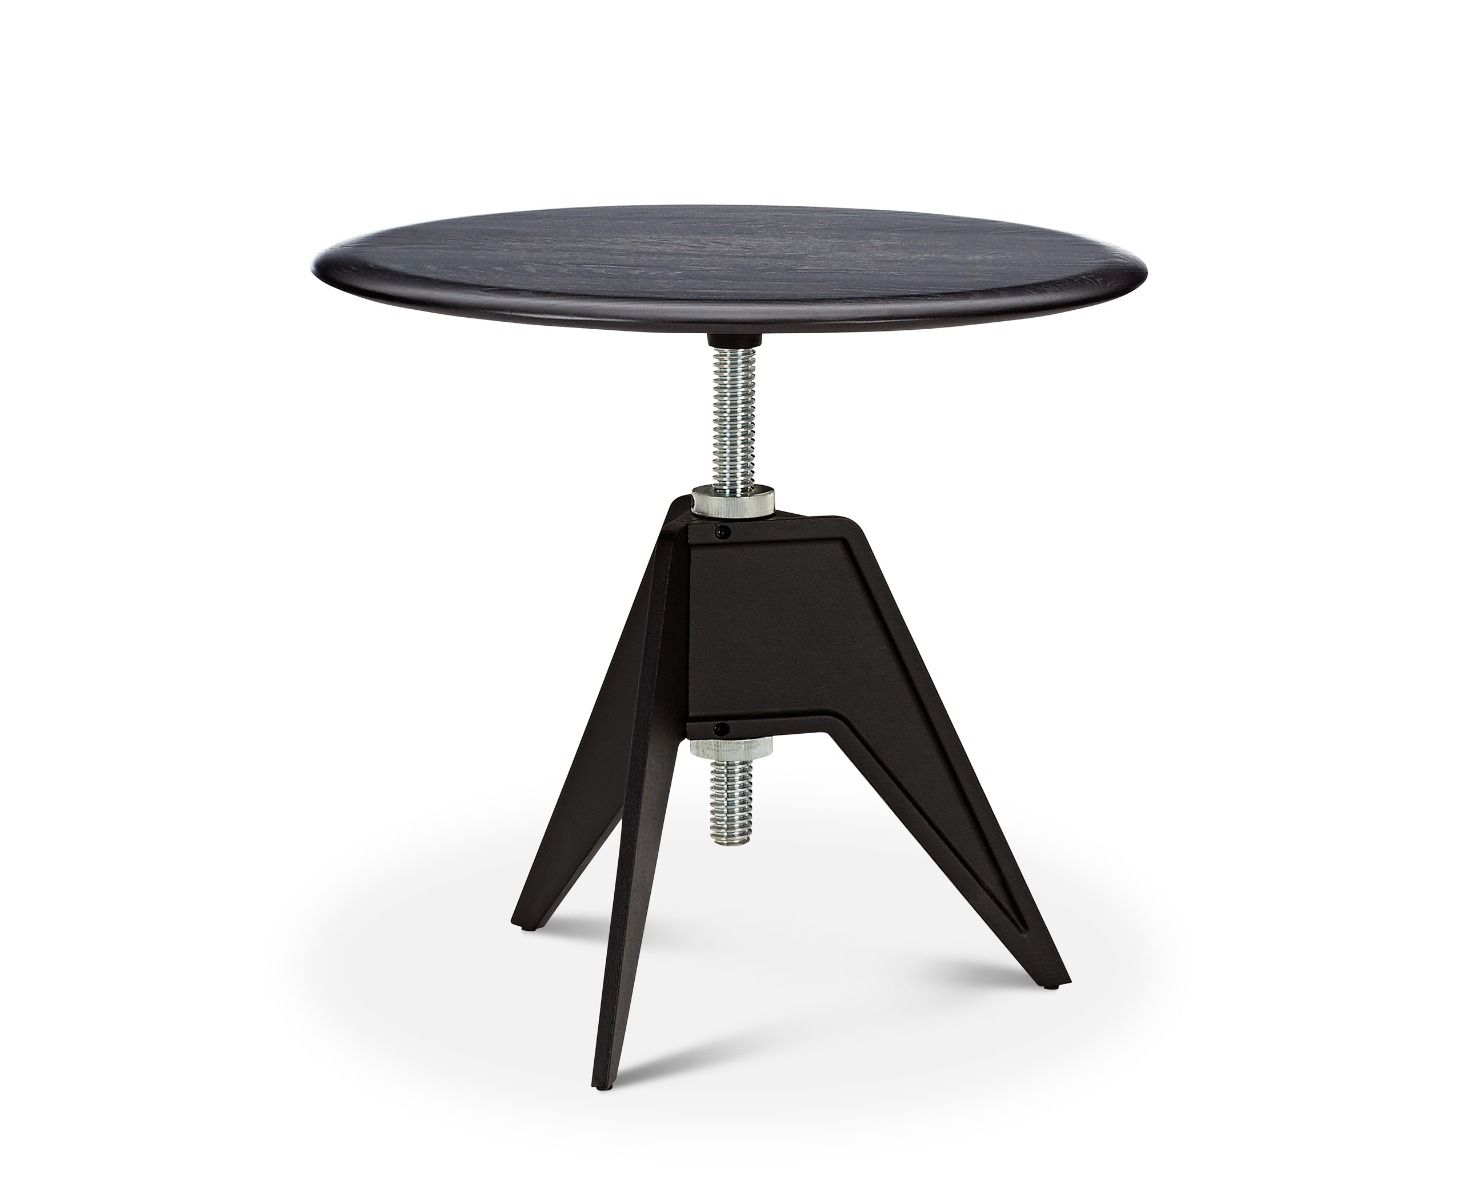 the perfect beautiful next black side table gallery mira road screw oak tables tom dixon base square top dorm size refrigerator disney furniture metal frame legs small dimensions